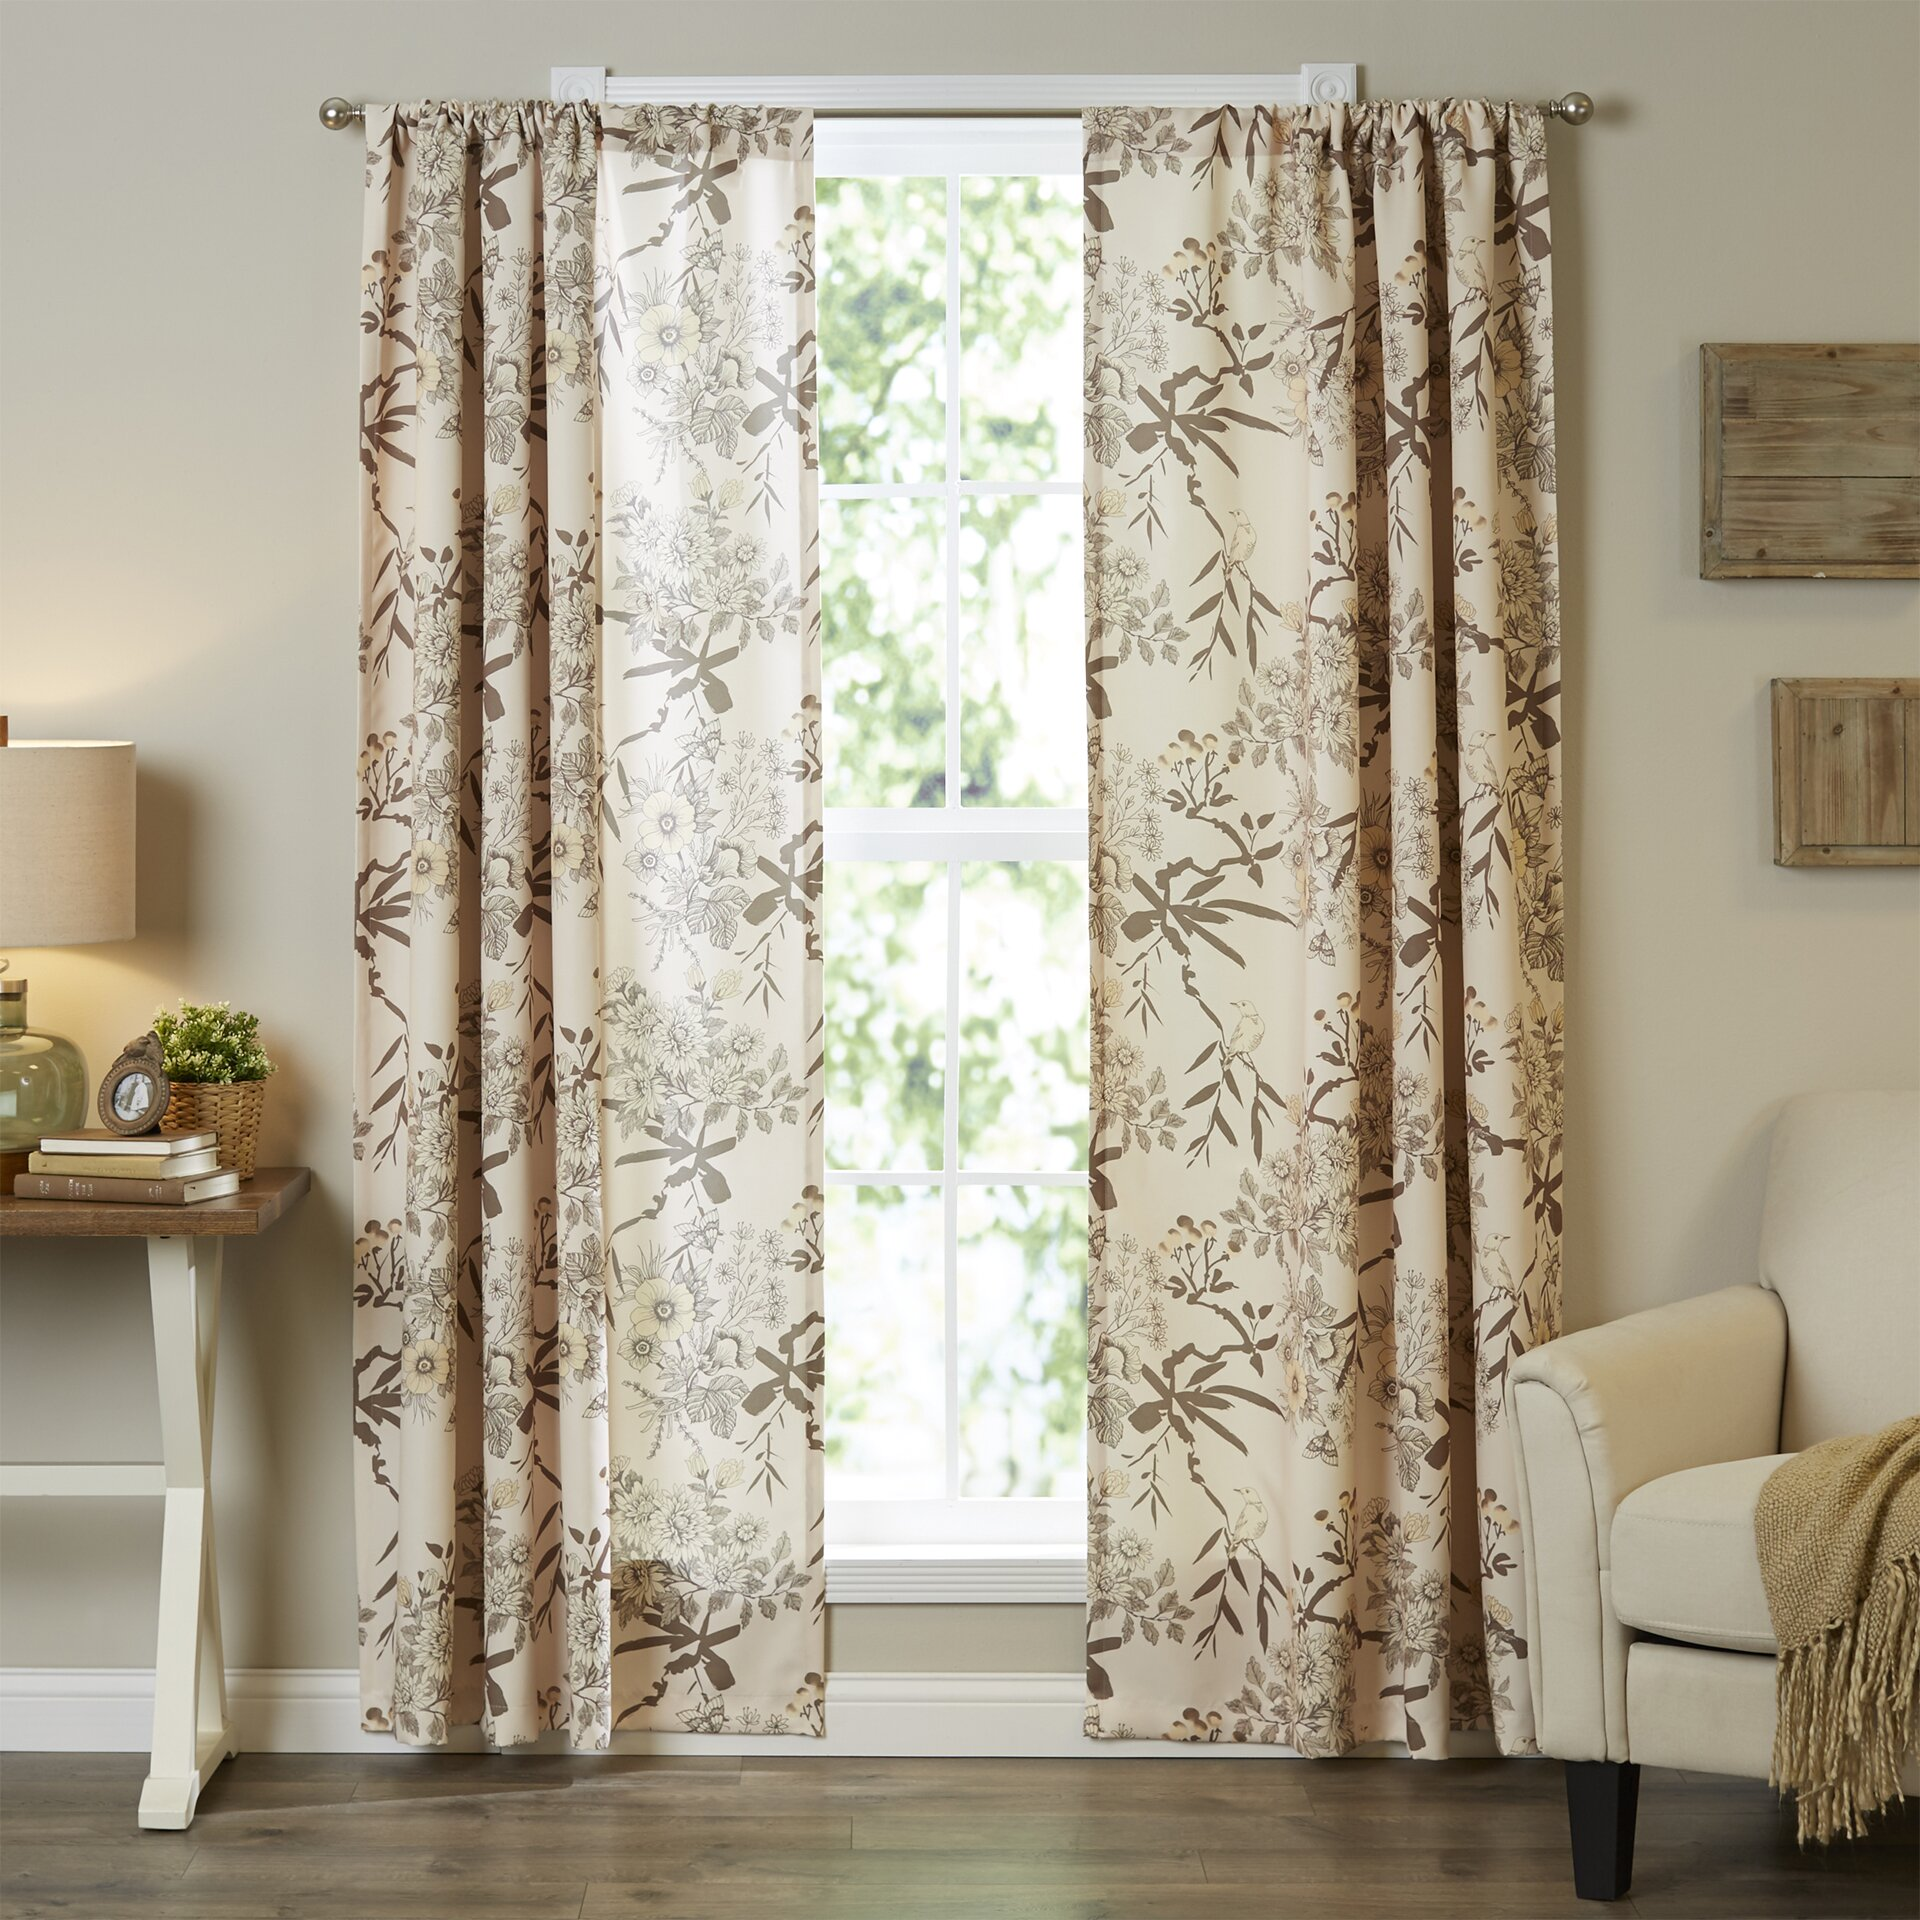 Pinch Pleated Thermal Insulated Drapes: Red Barrel Studio Myers Nature/Floral Blackout Thermal